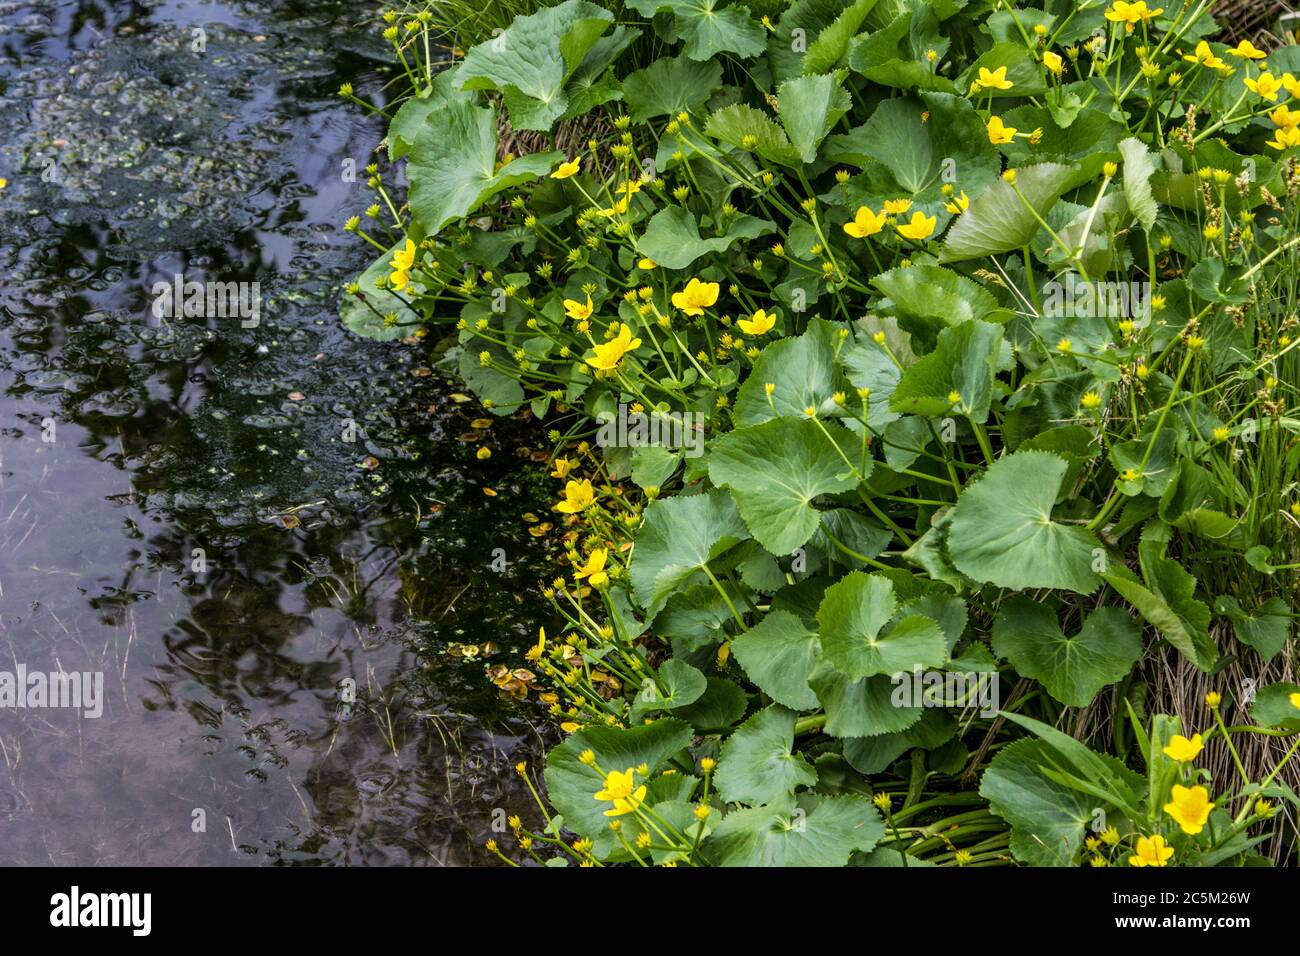 Yellow Marsh Marigolds along a freshwater stream in northern Michigan. Stock Photo